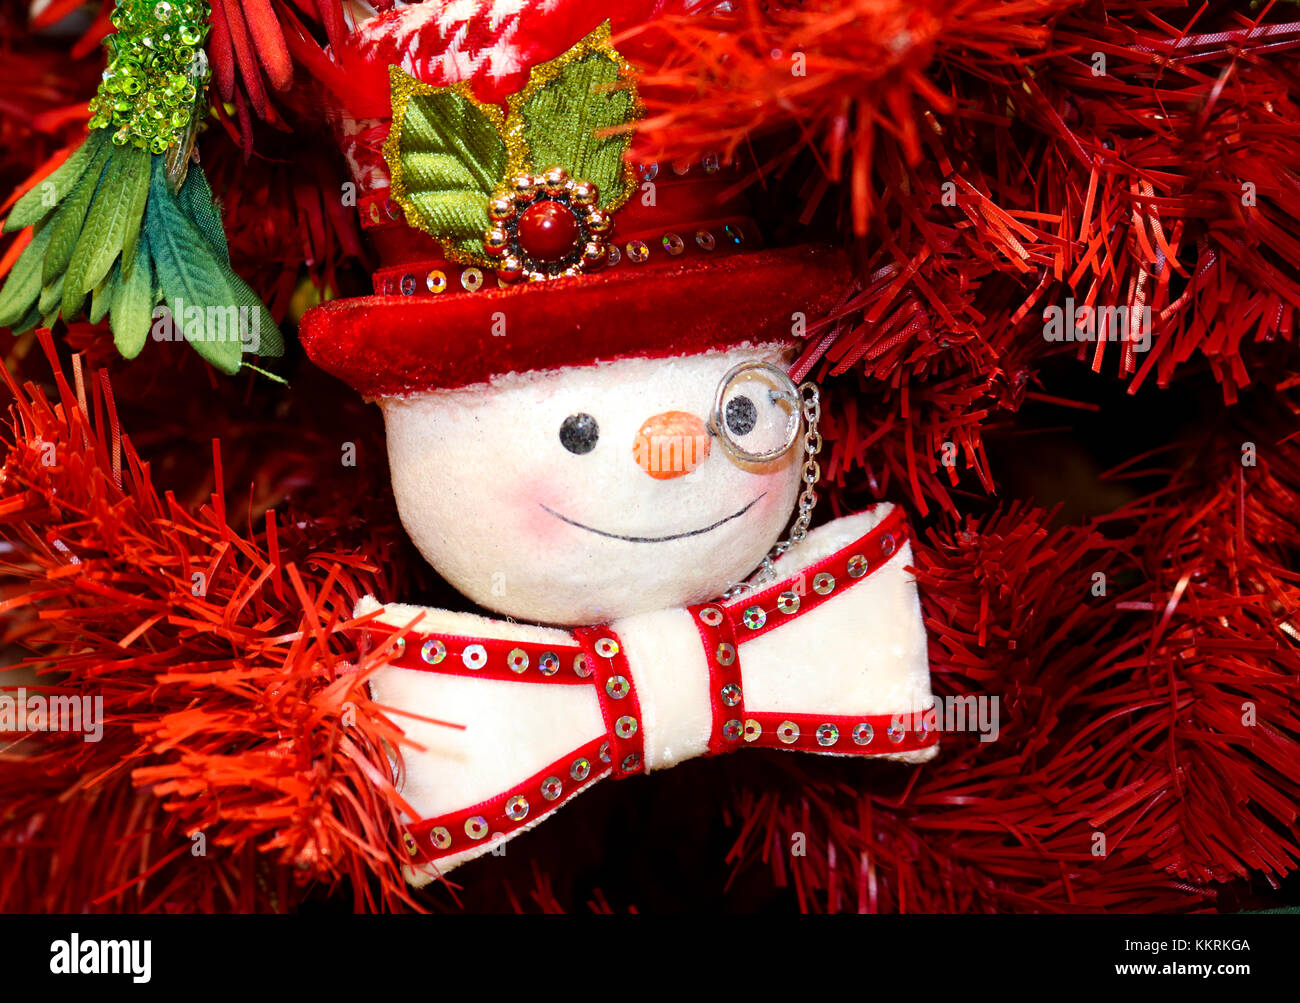 Steampunk snowman ornament with monacle top hat and bow tie on red Christmas tree - Stock Image